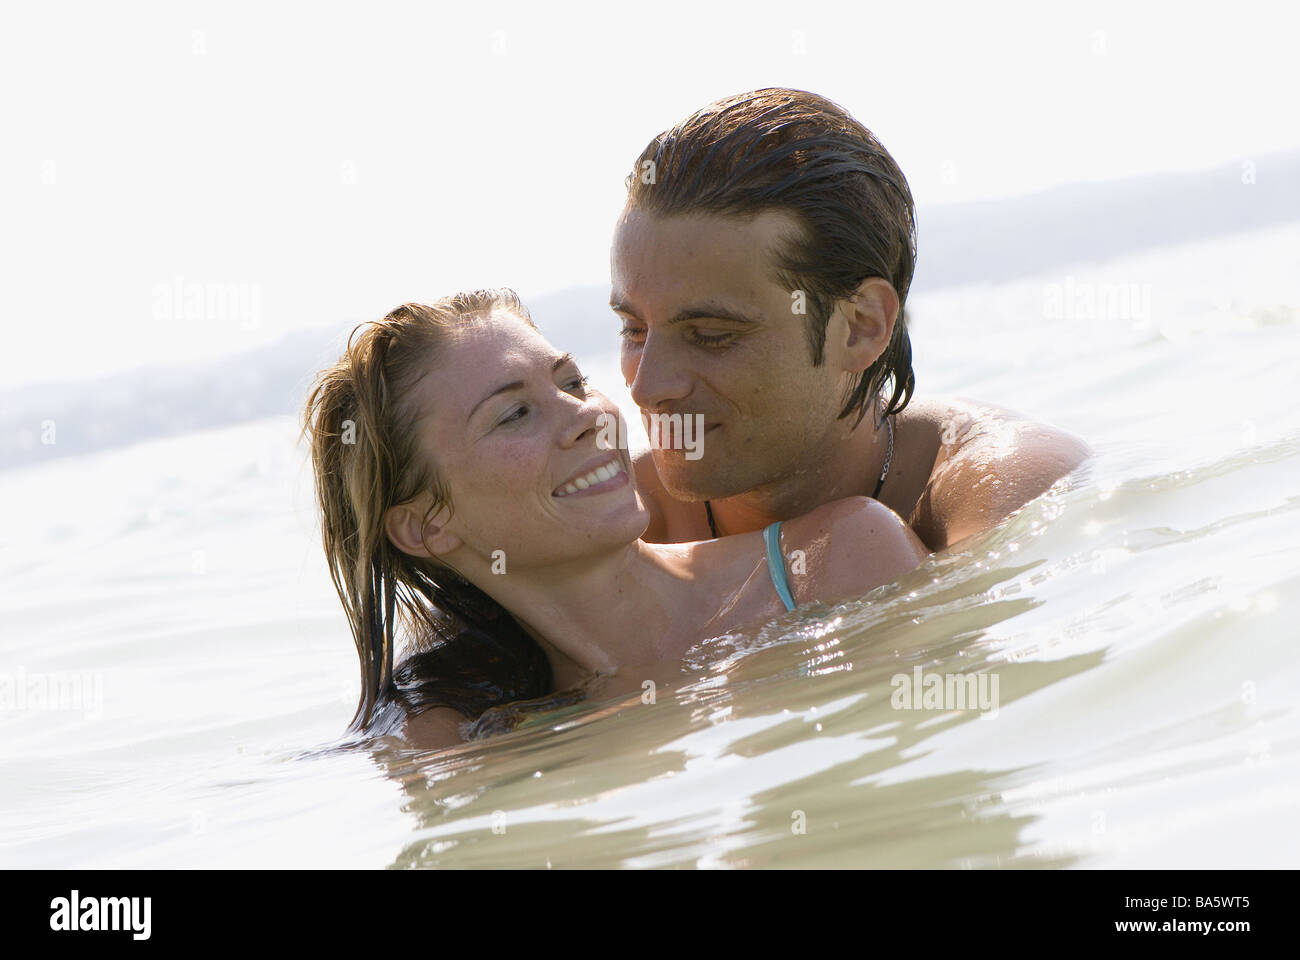 Sea pair water falls in love stands love-pairs embrace smile gaze-contact portrait series people love proximity - Stock Image